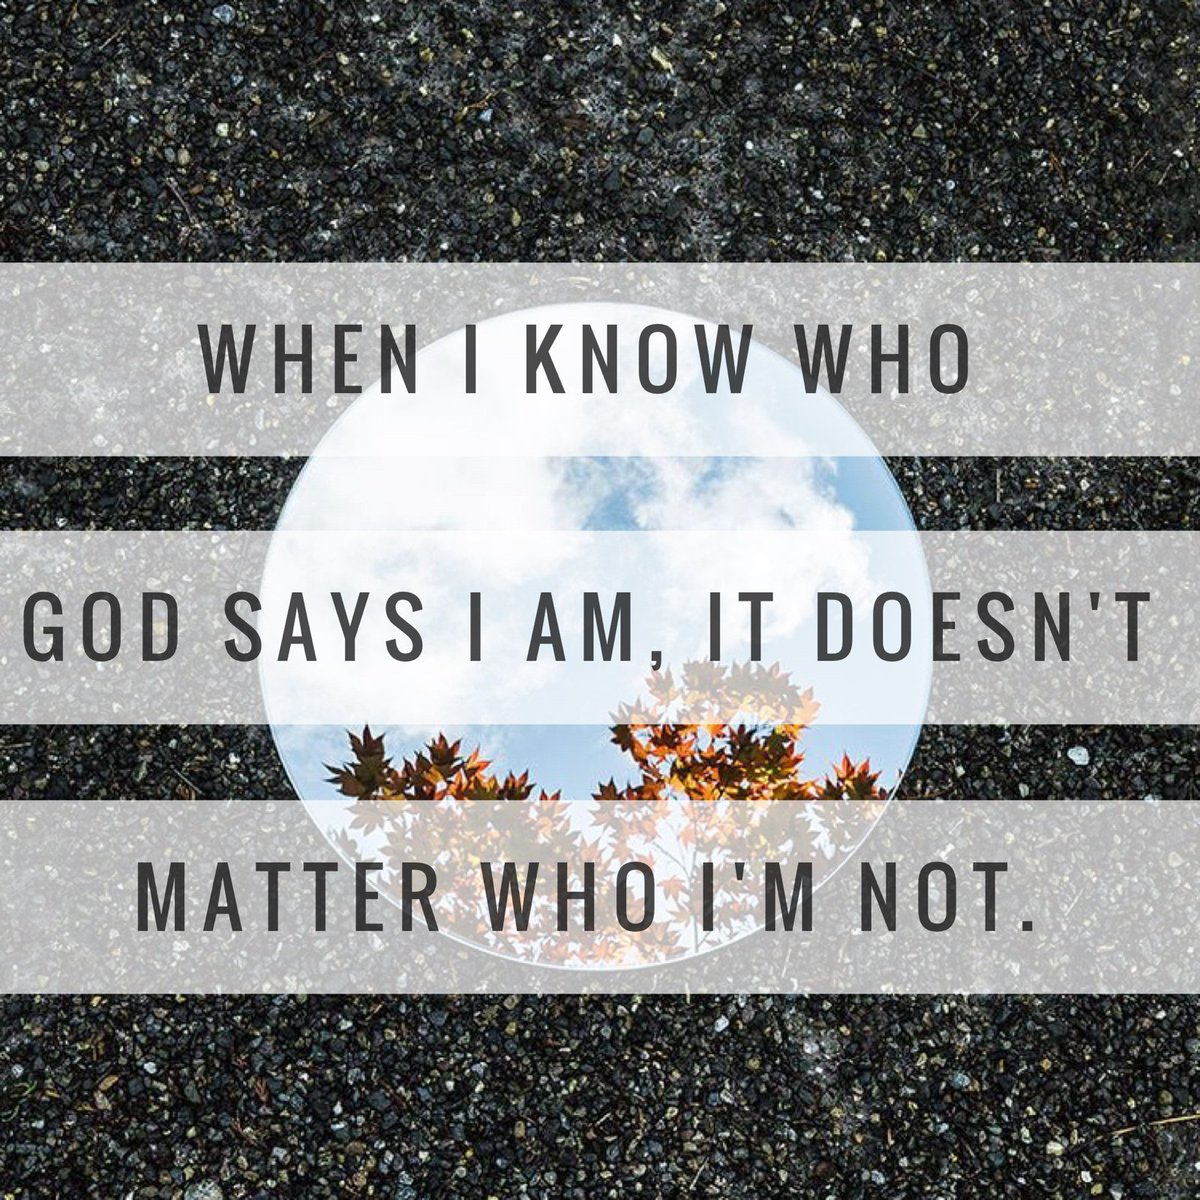 There's a difference in who you are and whose you are... https://t.co/iPL3Xp3JHO